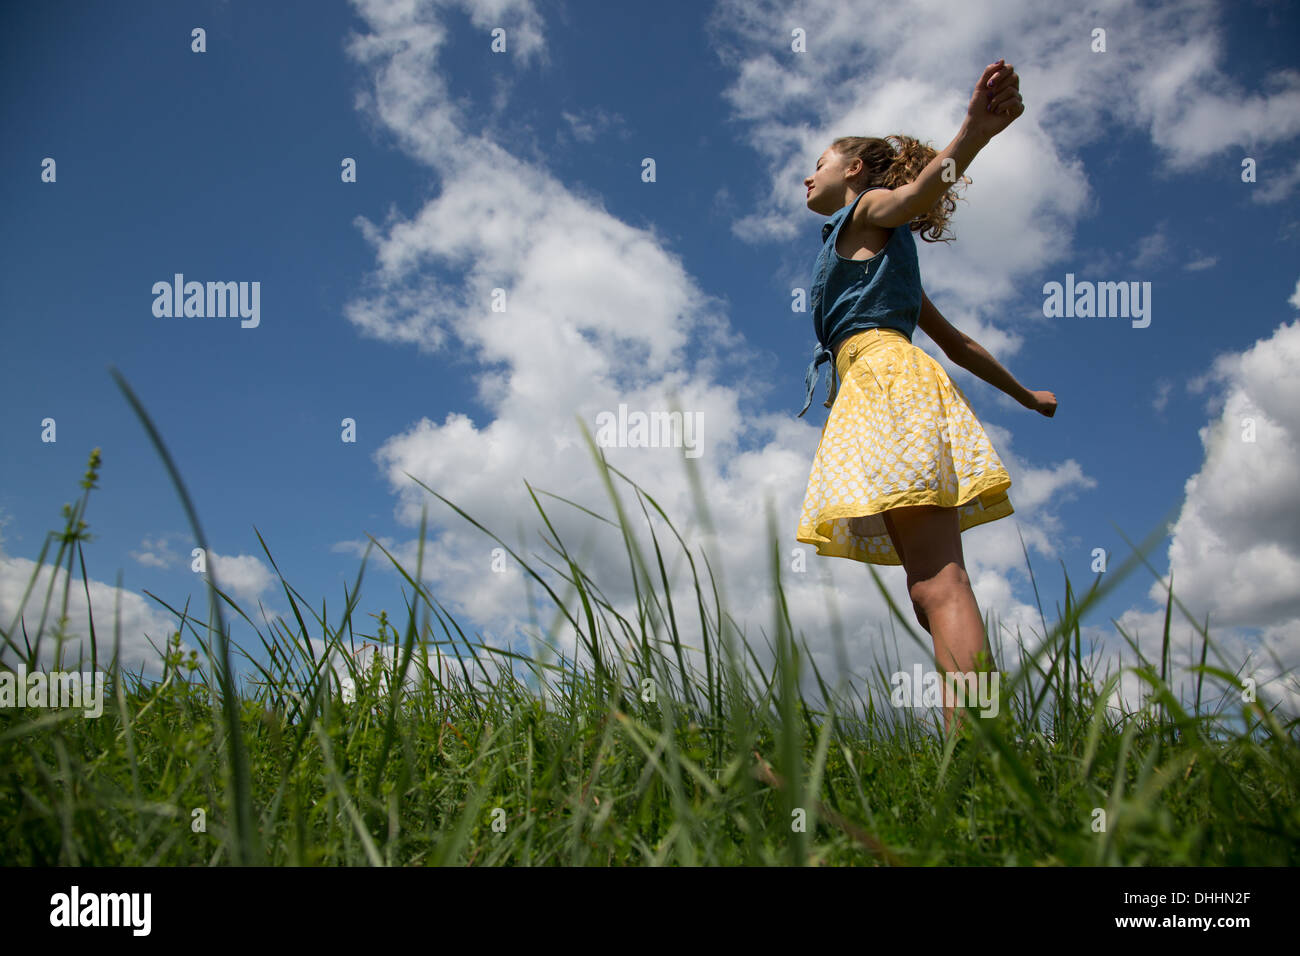 Teenage girl standing with arms outstretched in field - Stock Image